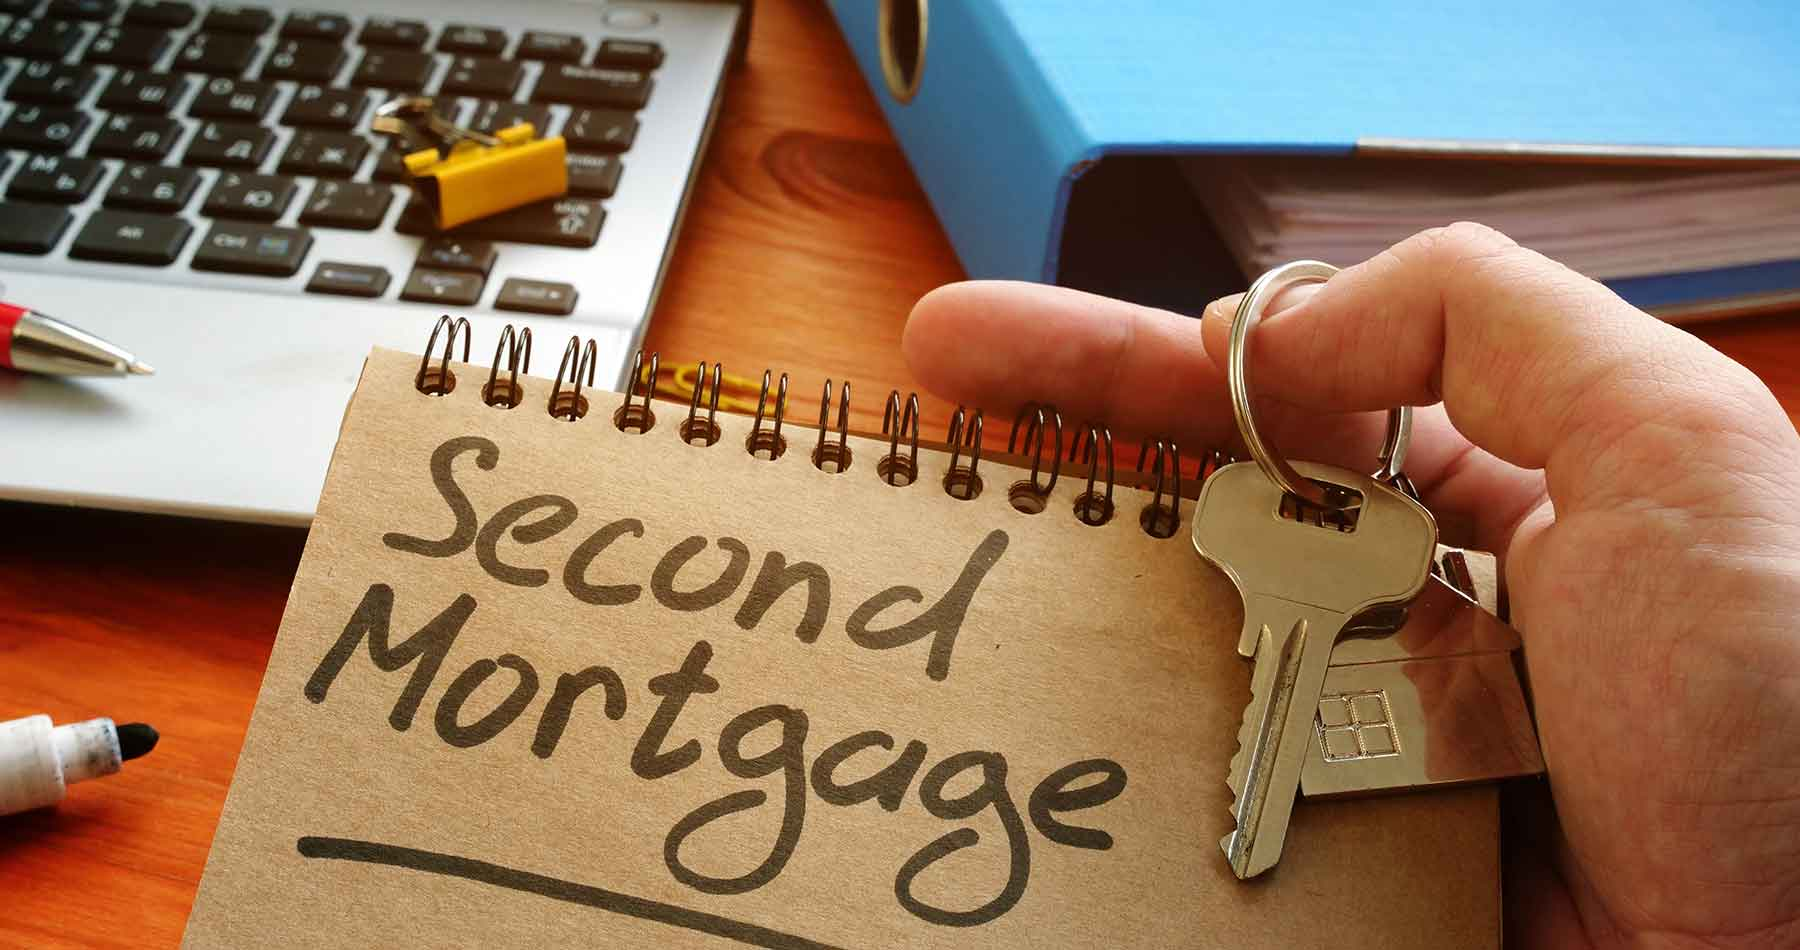 Second Mortgage To Pay Off Bad Credit Loans